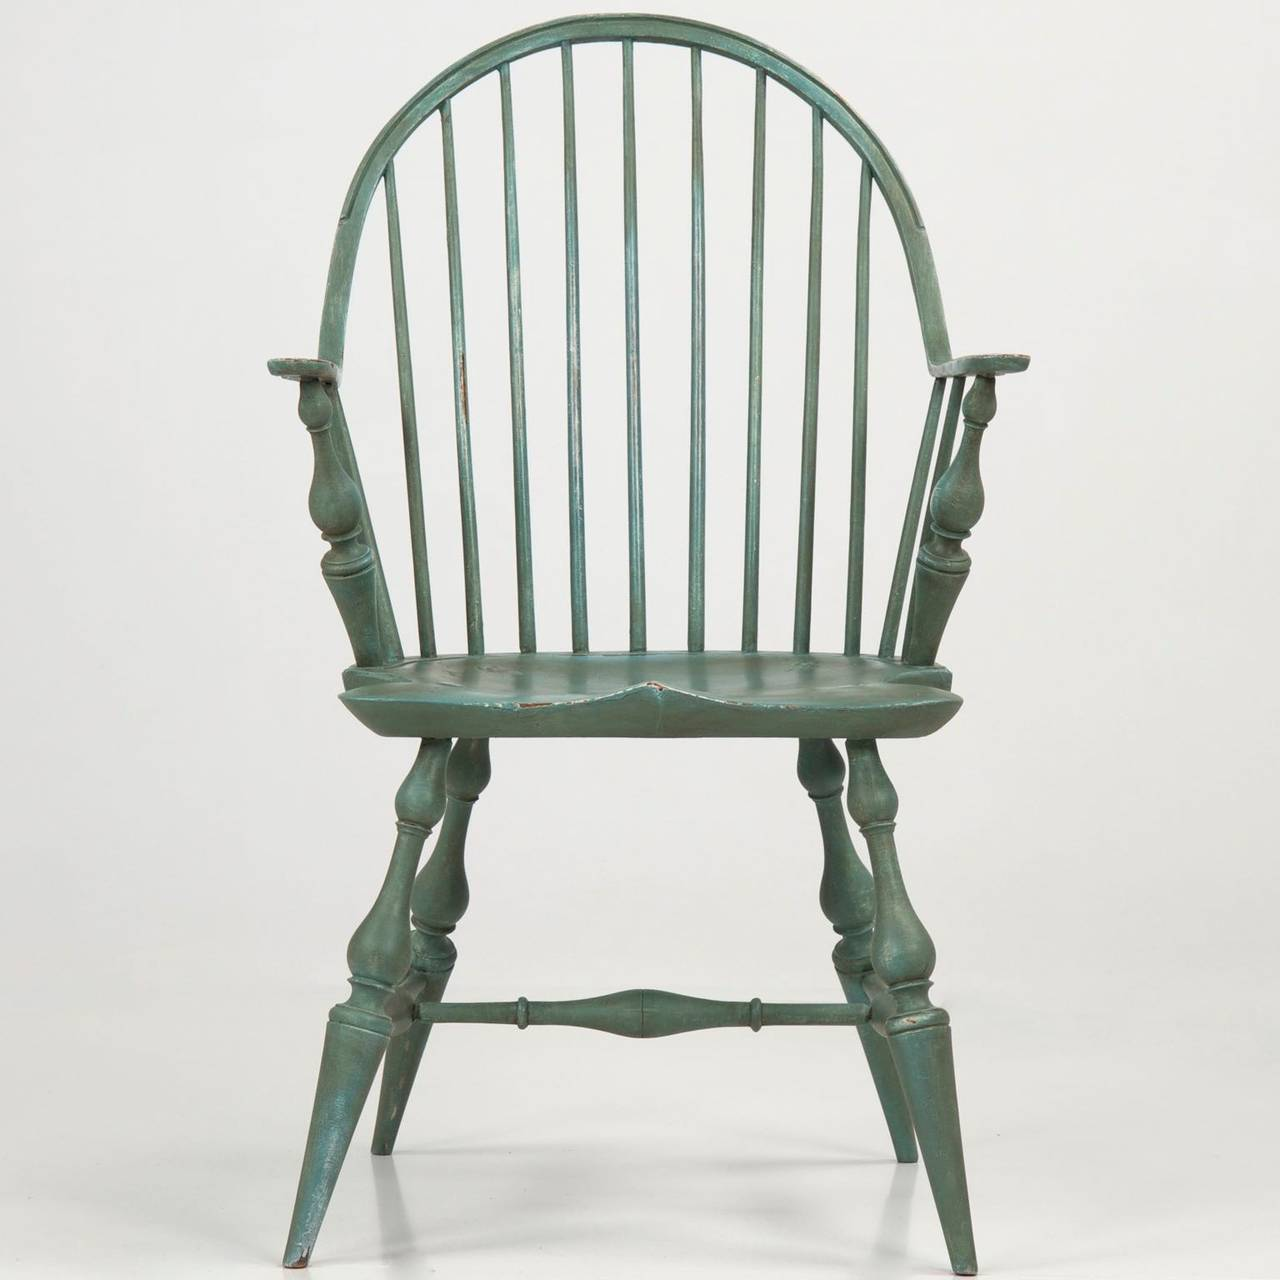 Windsor Style Chairs American Continuous Arm Windsor Style Chair 20th Century